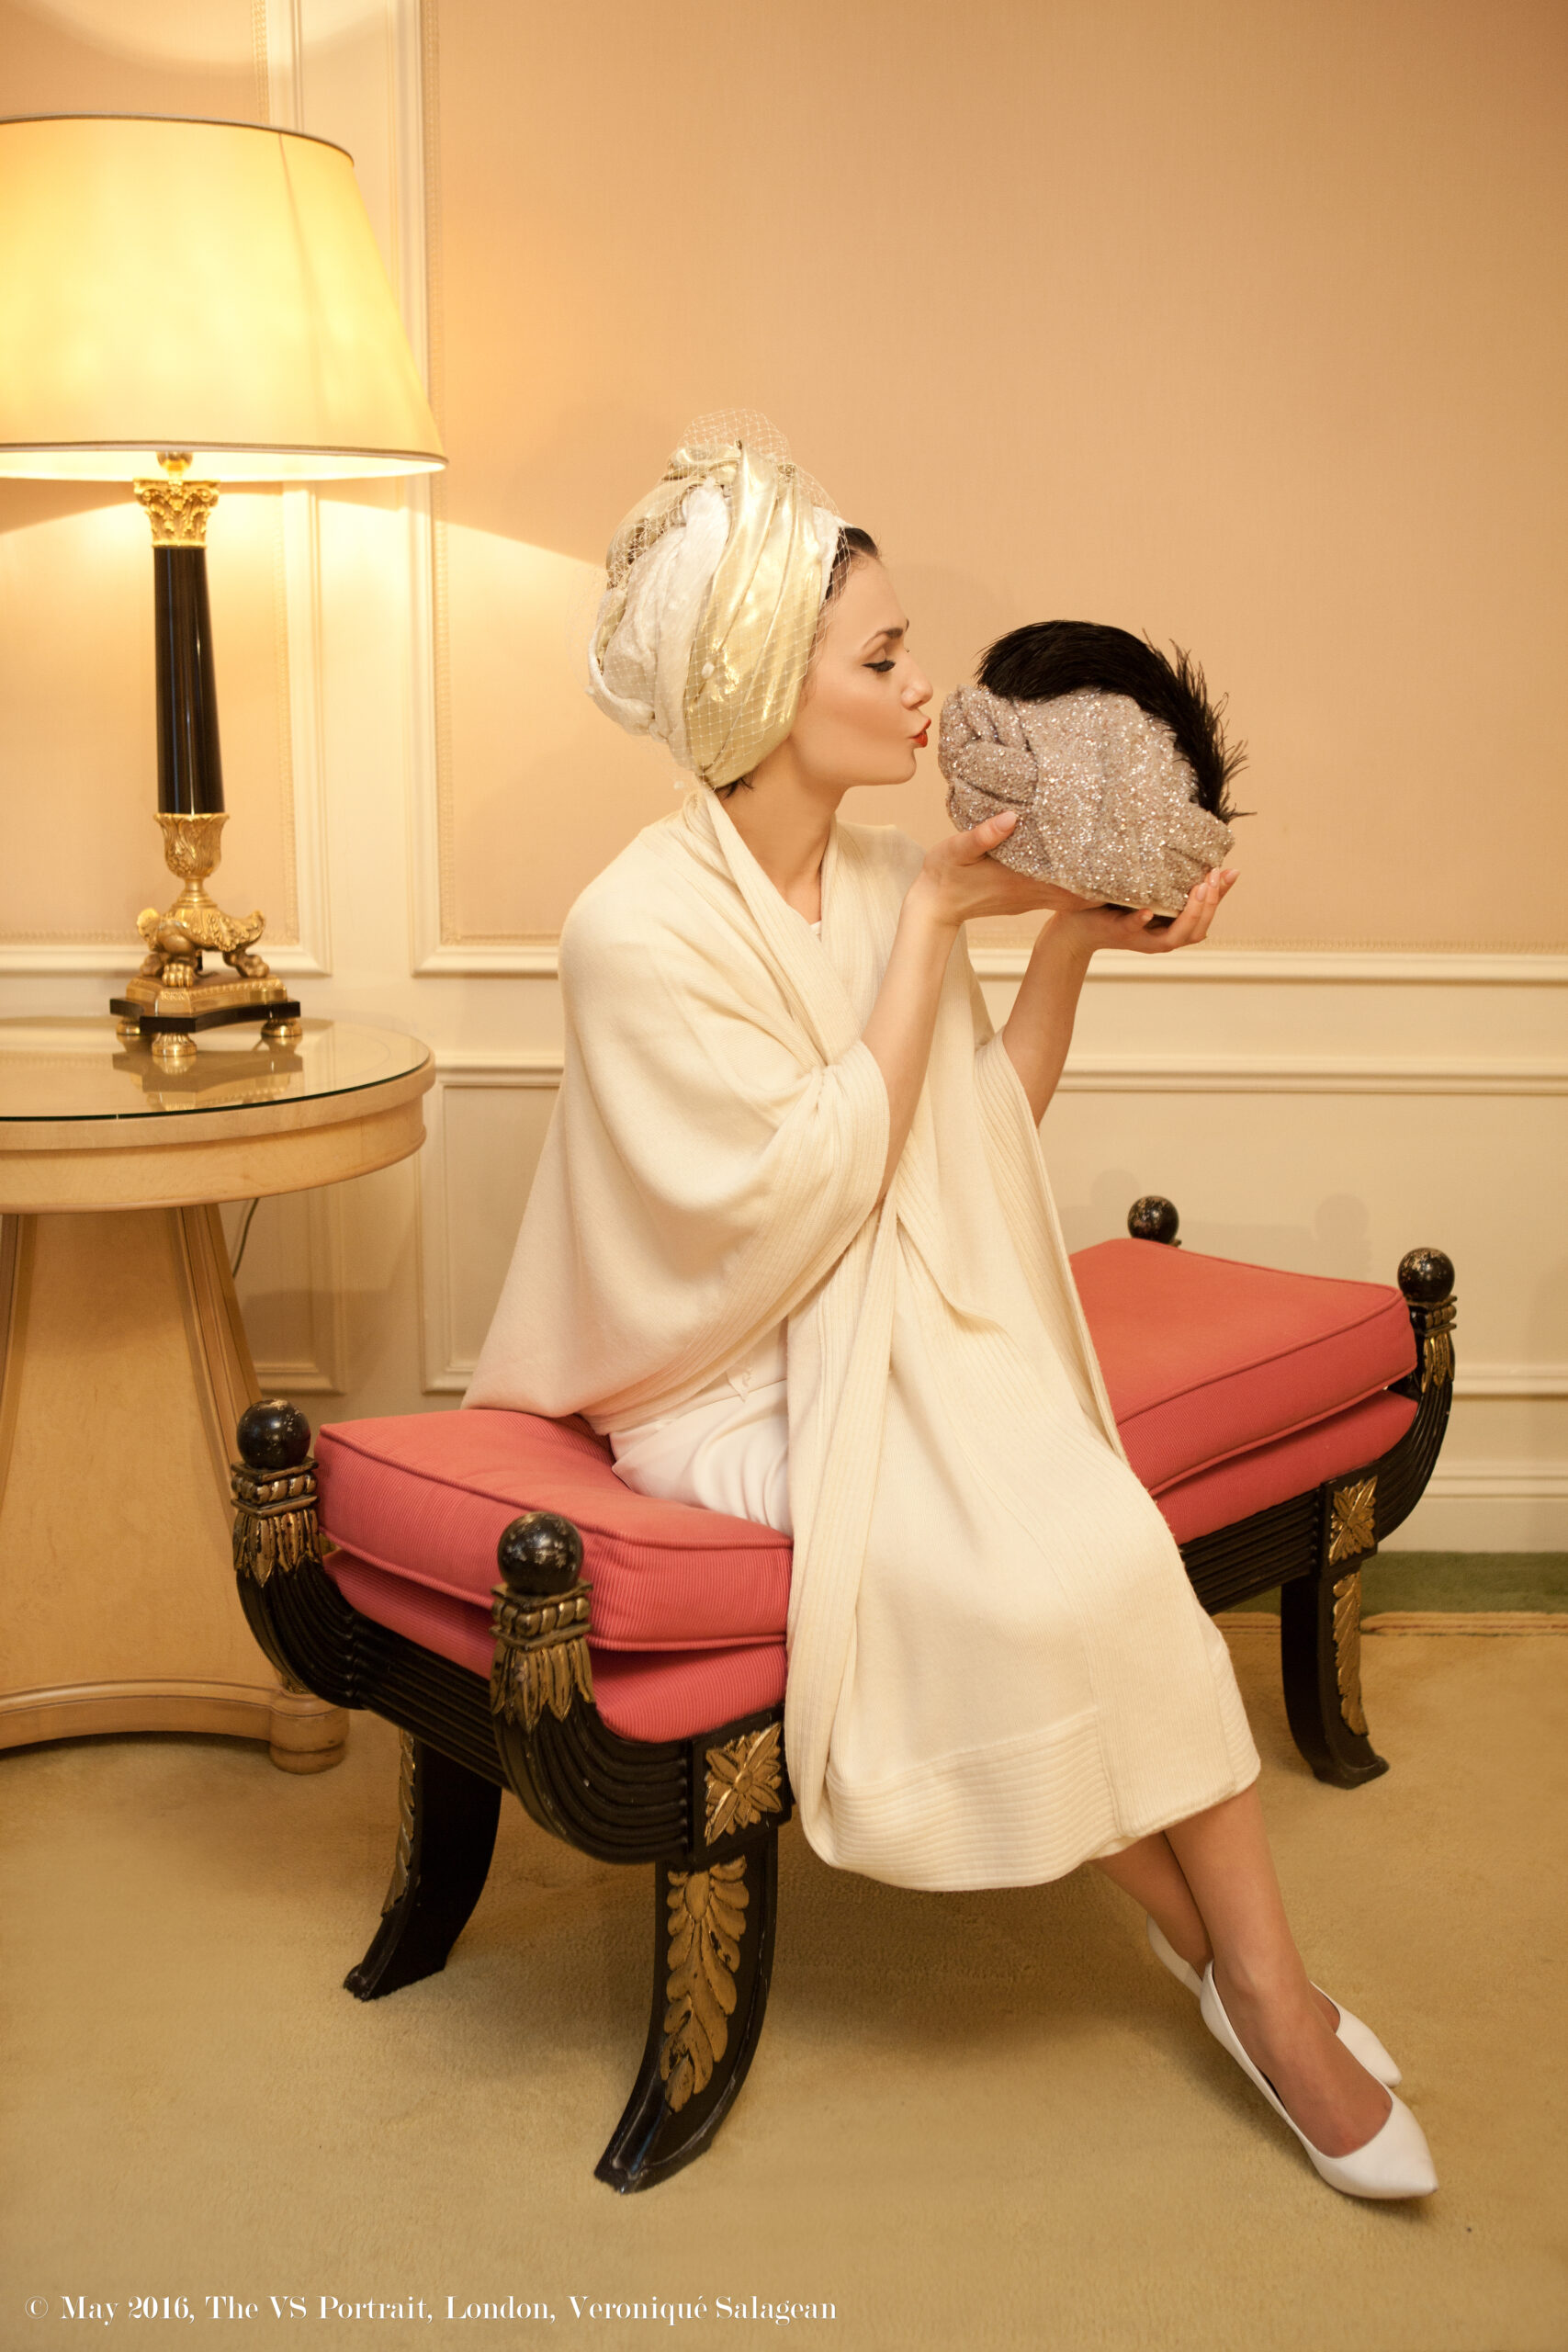 Shall we meet world's first Turban Designer and know the answers behind the infinite love for The TURBAN?